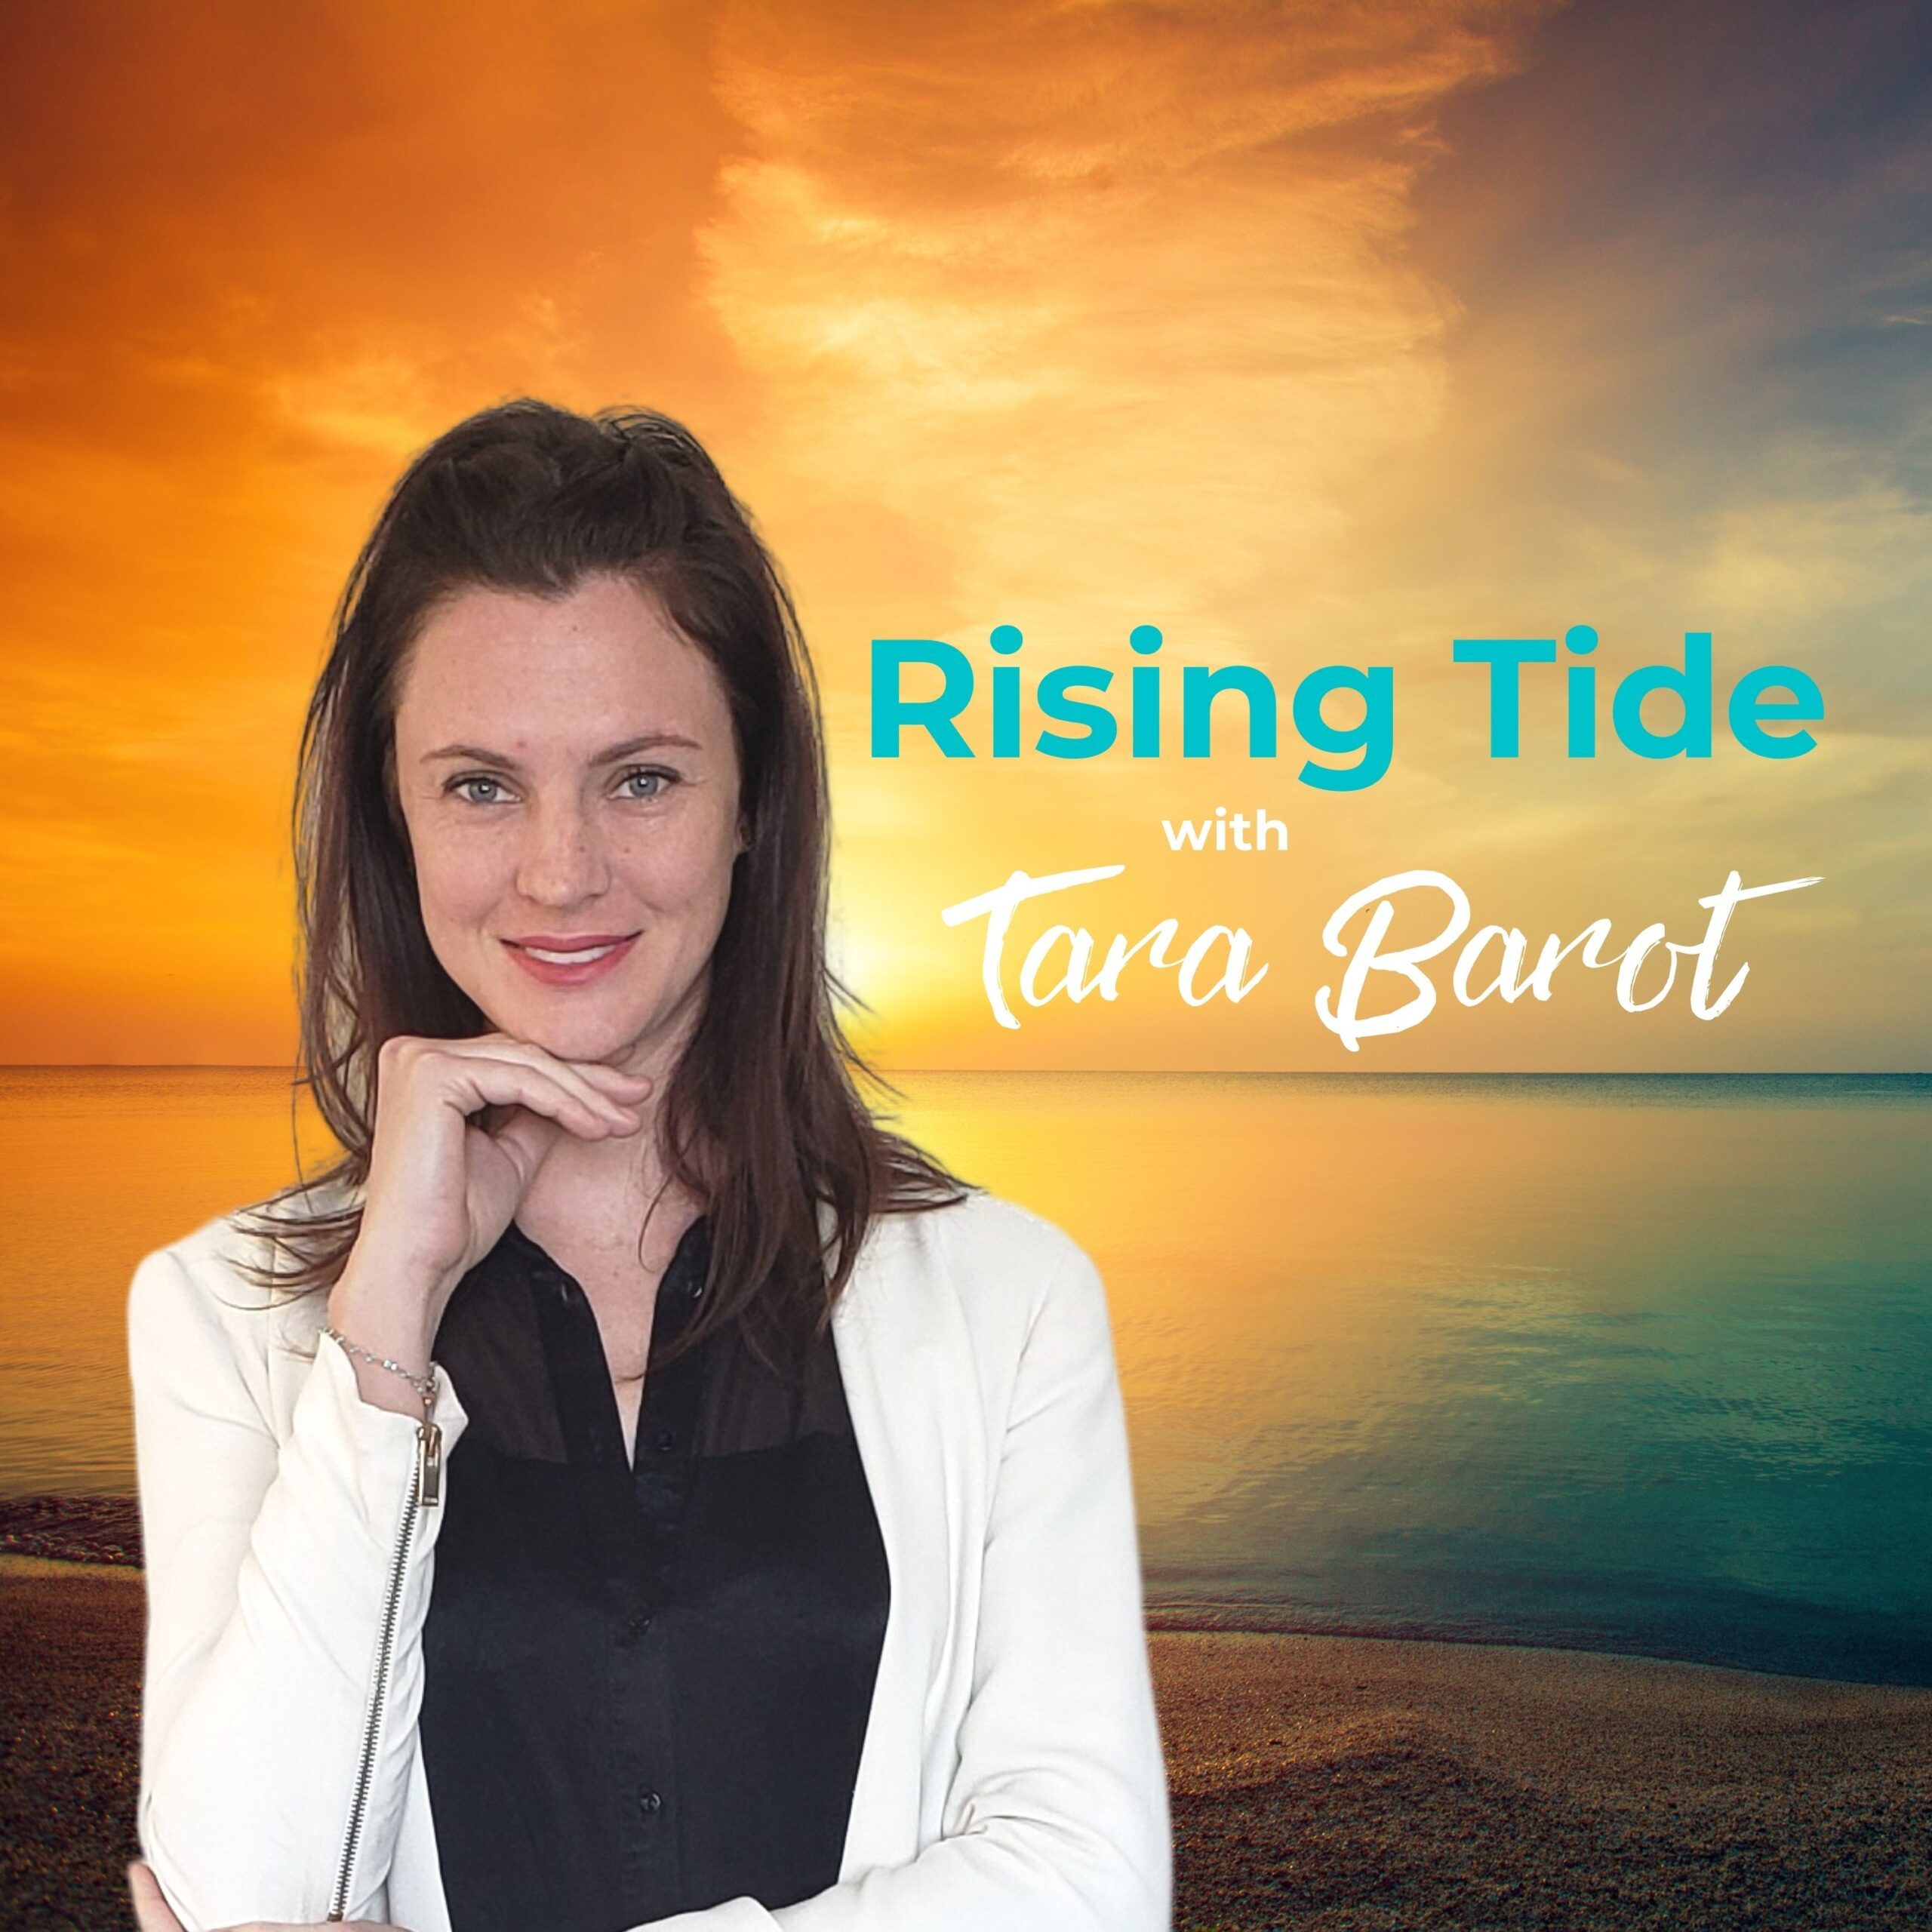 Tara Barot - Rising Tide podcast, video producer, entrepreneur, podcast host, speaker